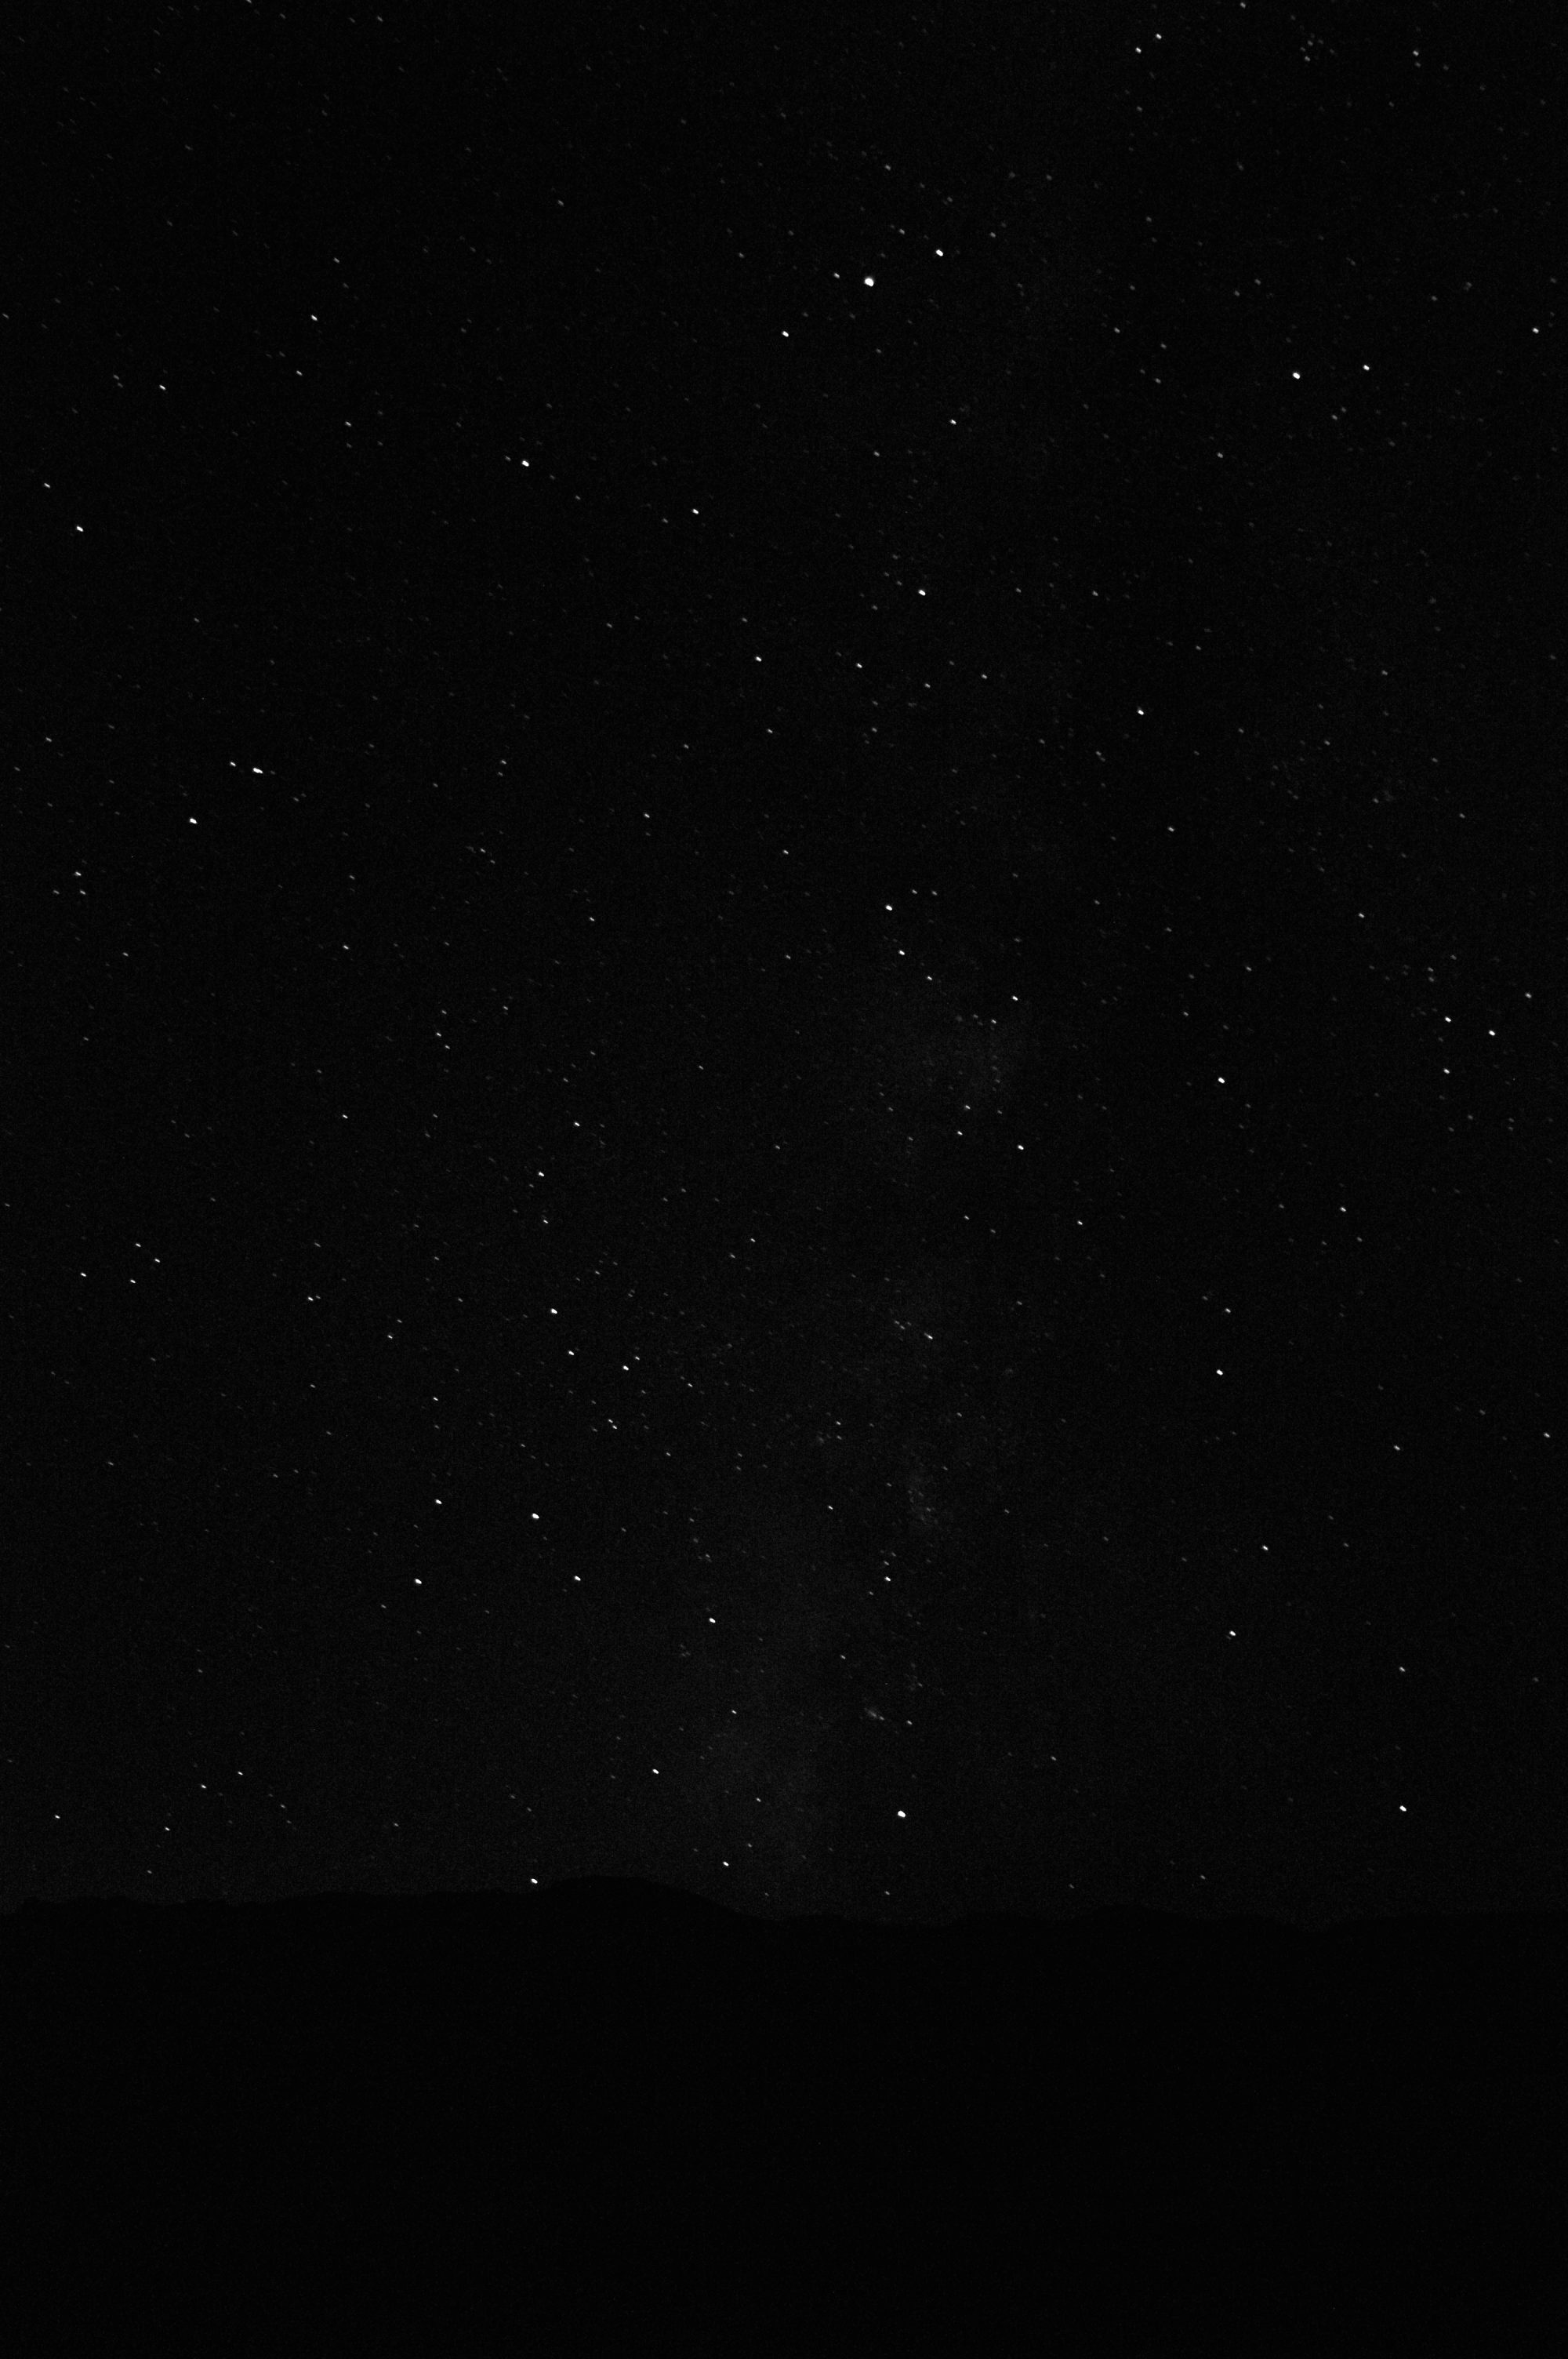 Milky Way Death Valley